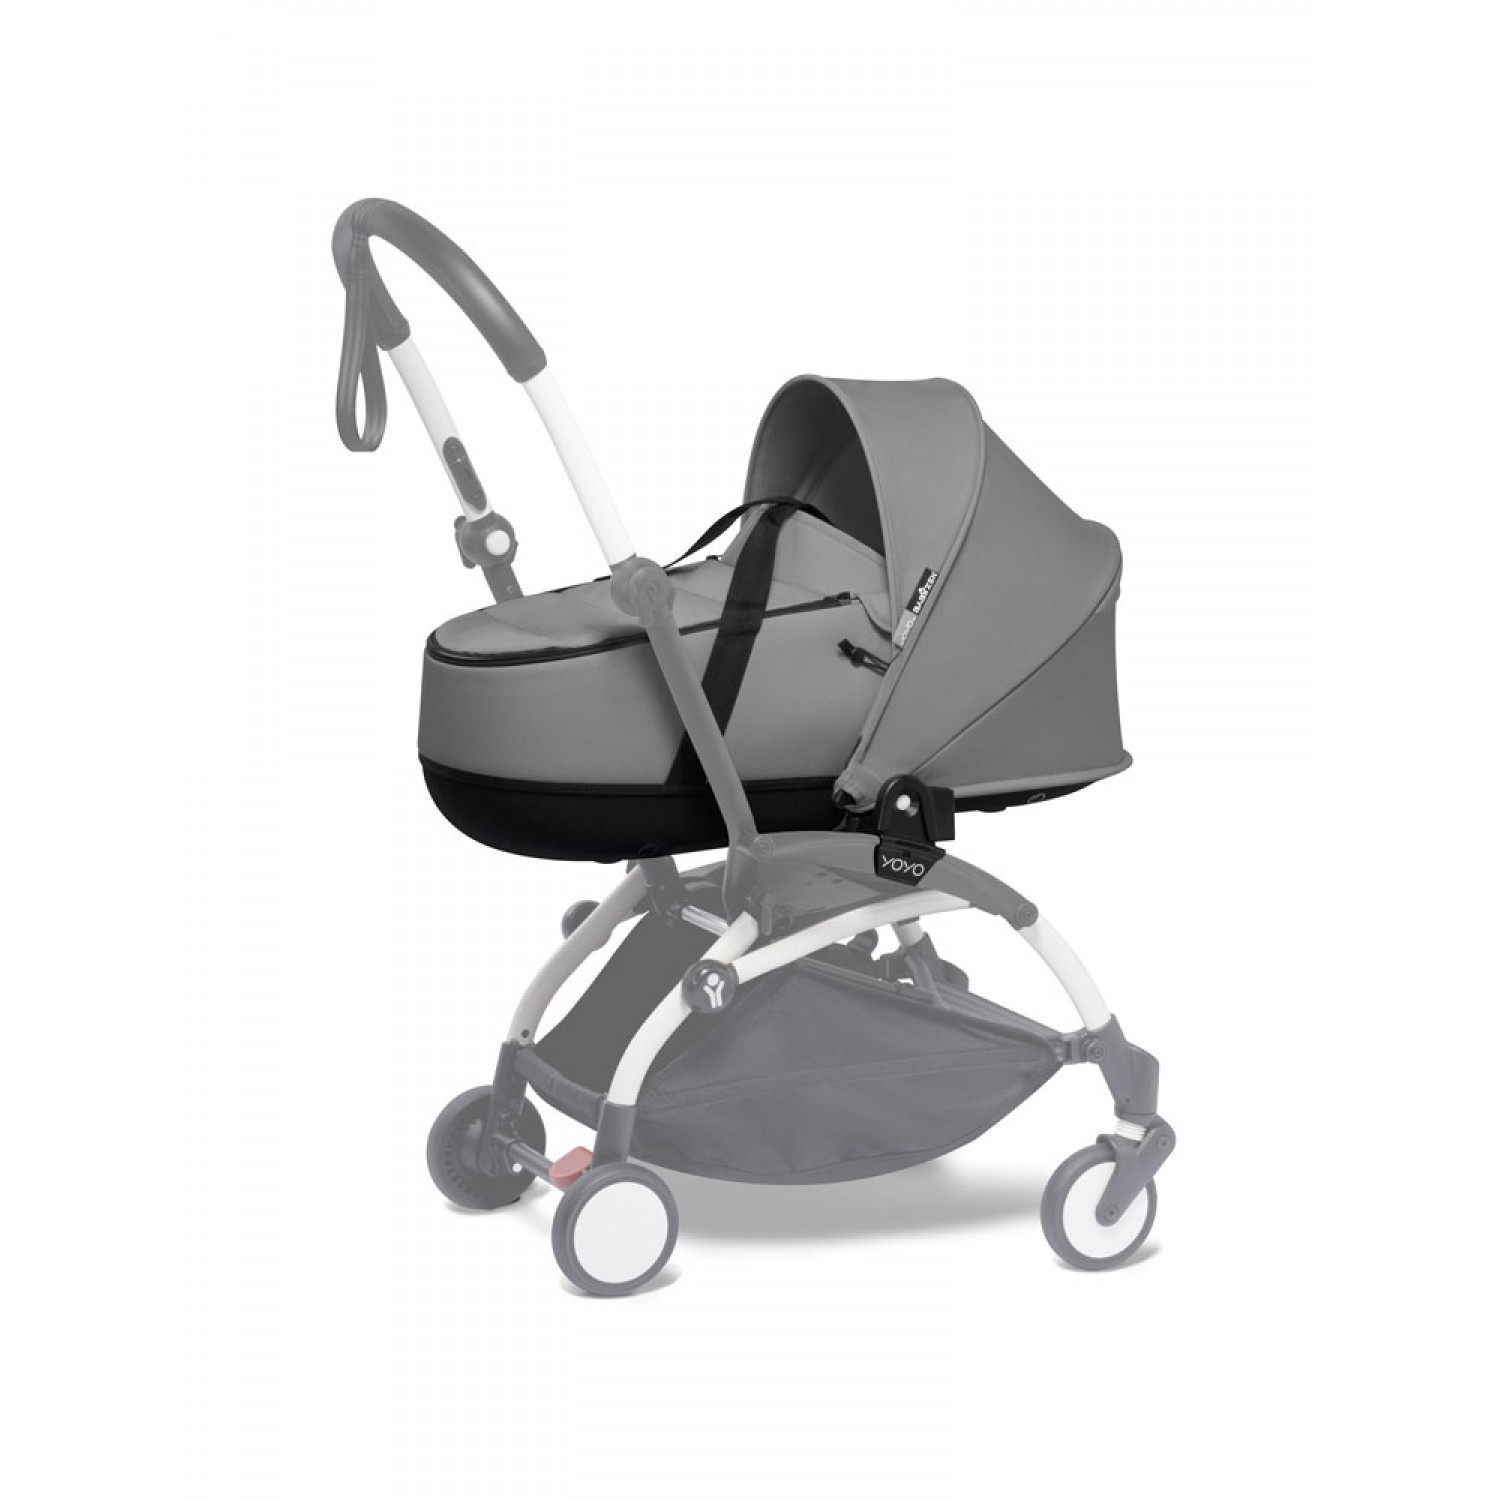 YOYO bassinet | Grey